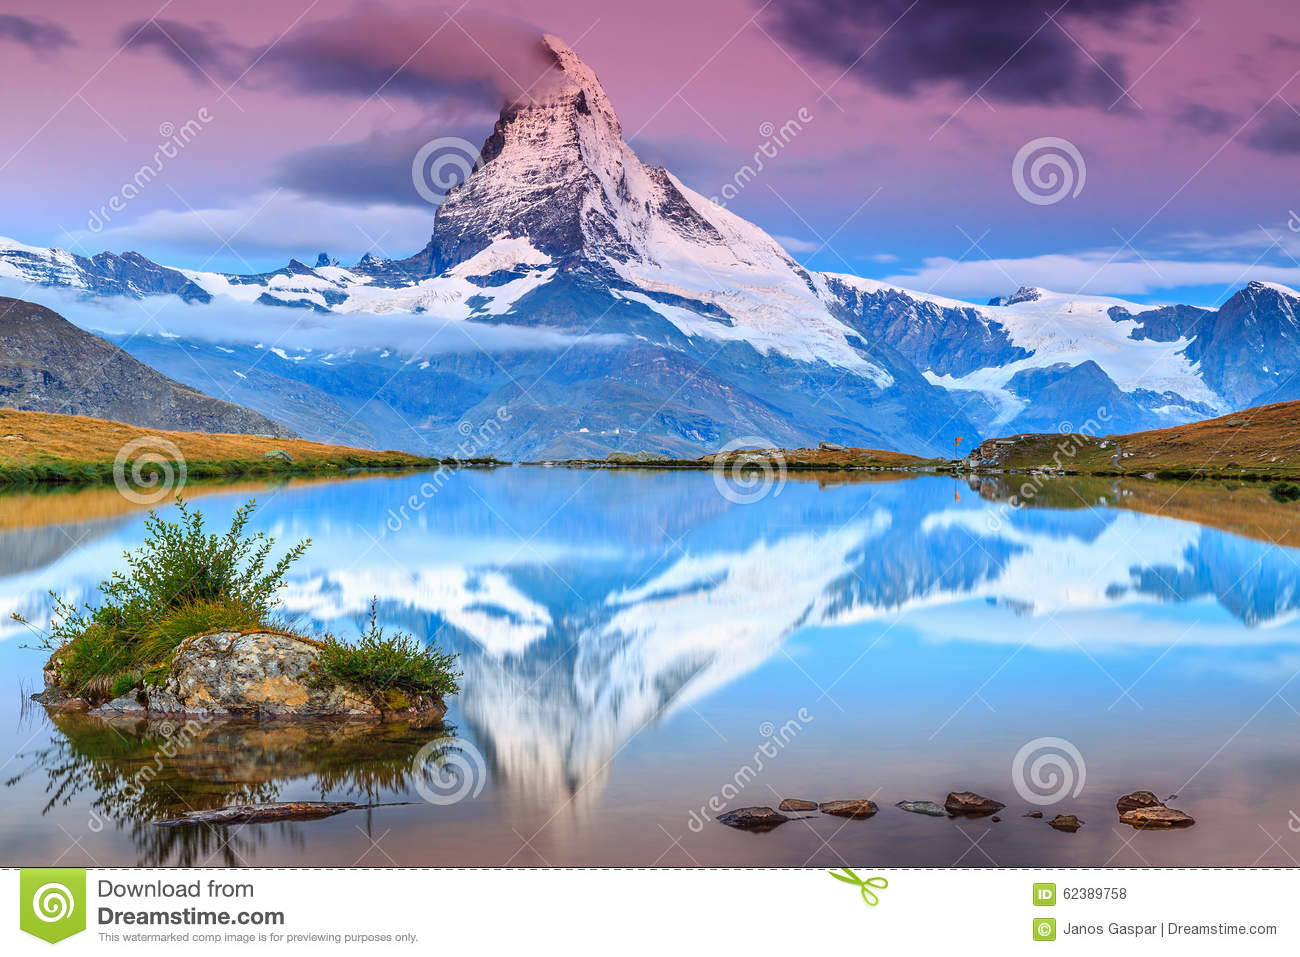 Amazing sunrise with Matterhorn peak and Stellisee lake,Valais,Switzerland